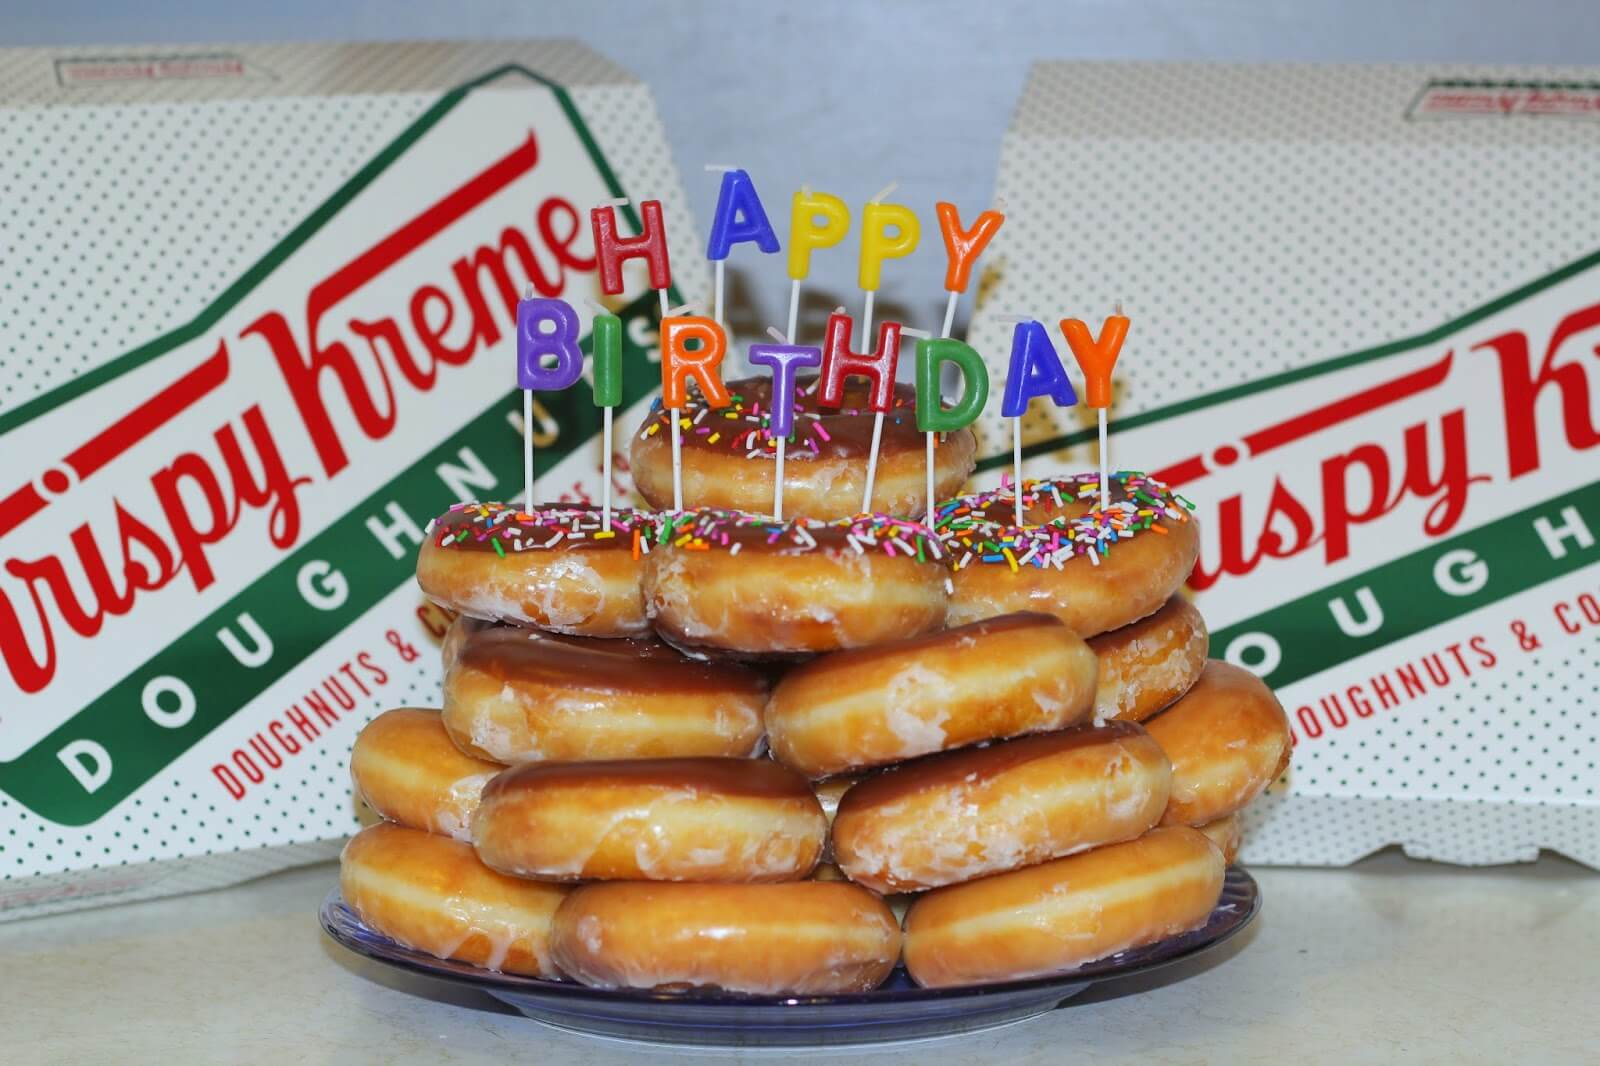 bitthday cake made of donuts